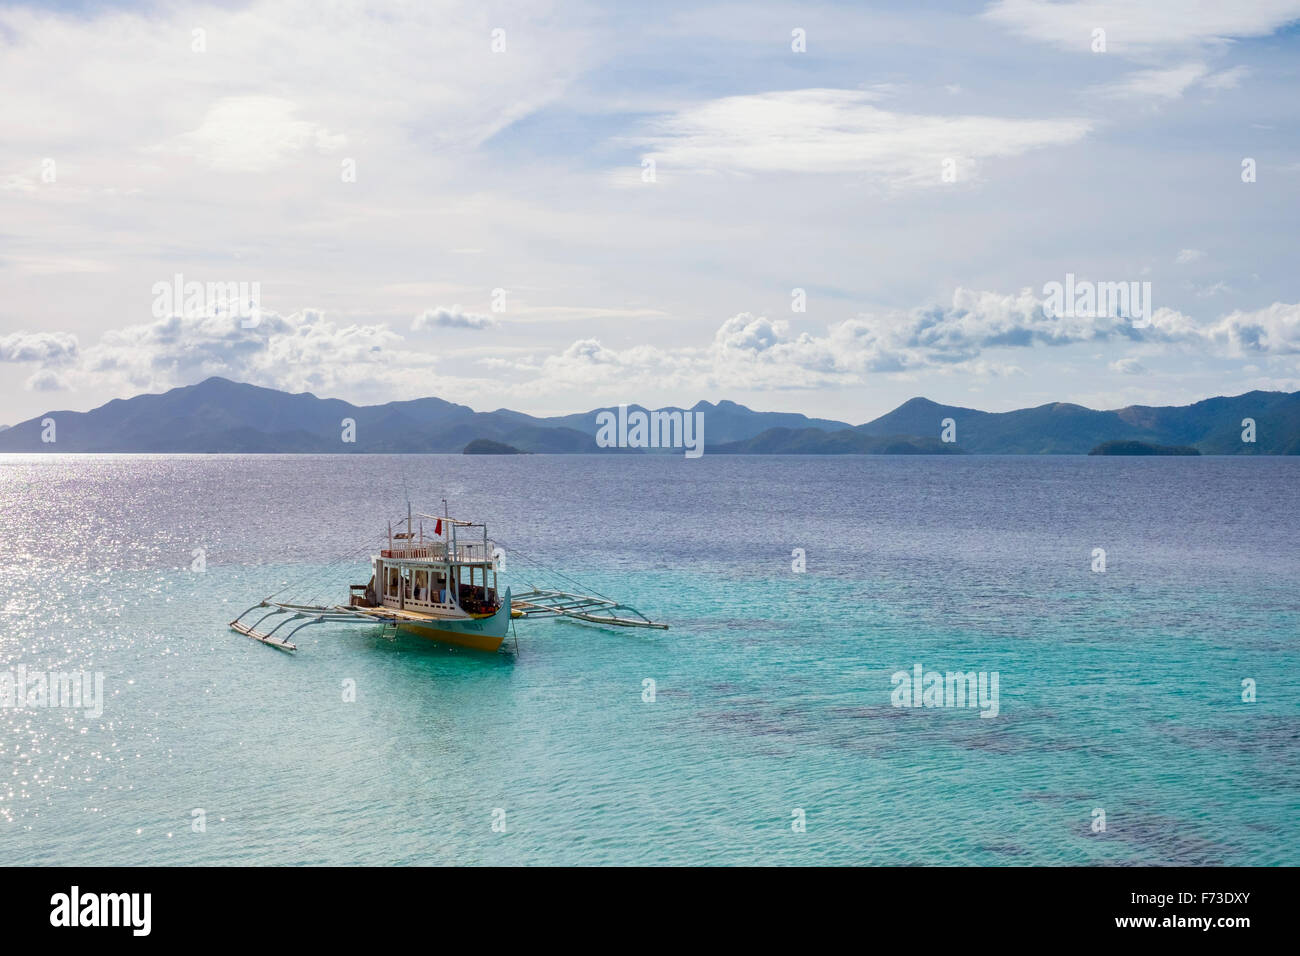 Outrigger boat anchored at Cauayan Island, Philippines - Stock Image